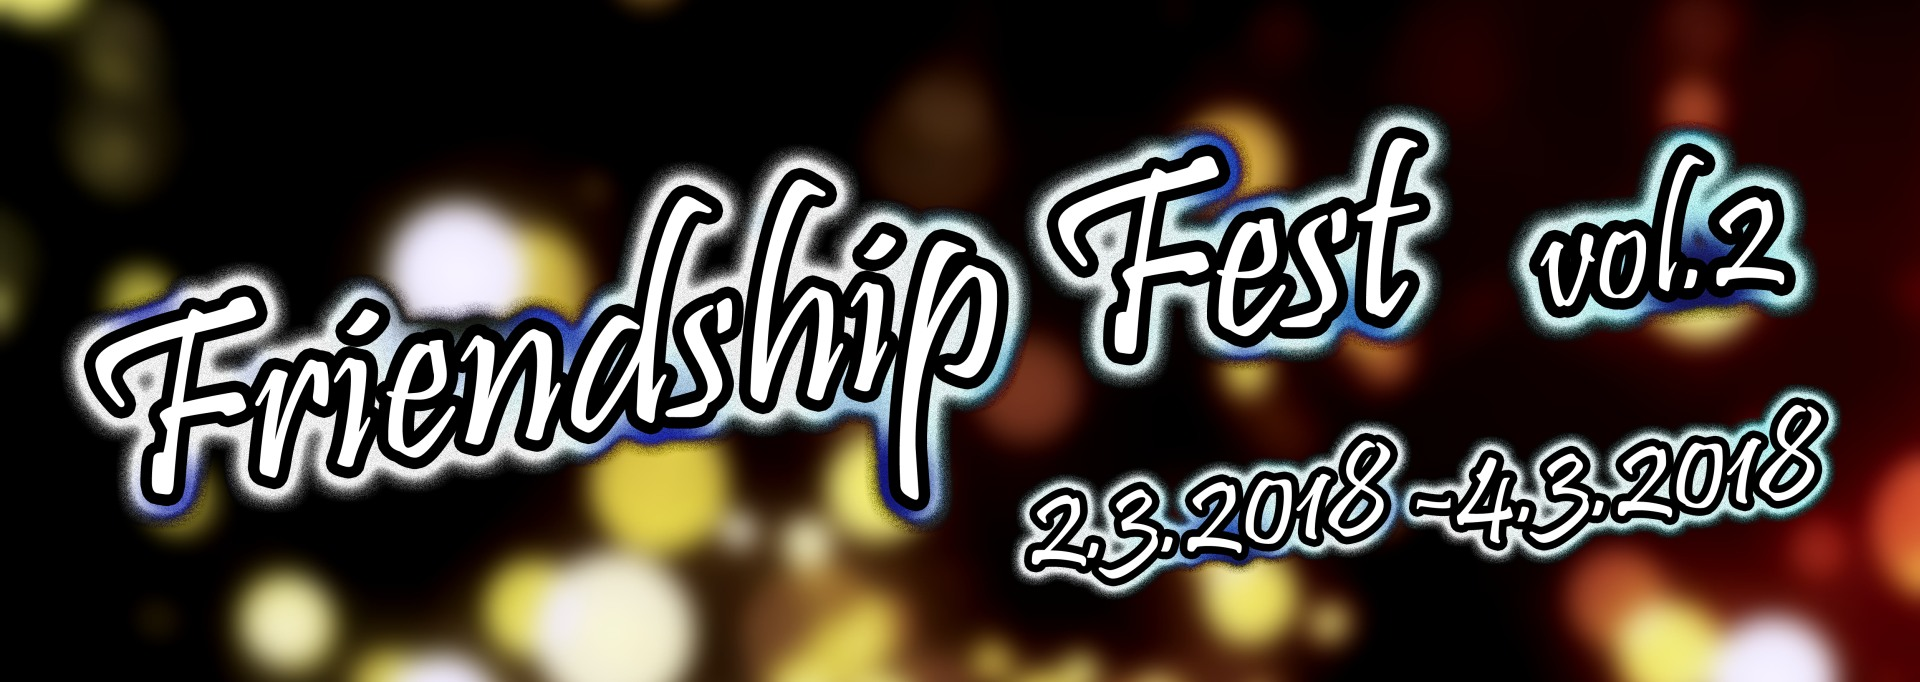 Friendship Fest 2018 banner